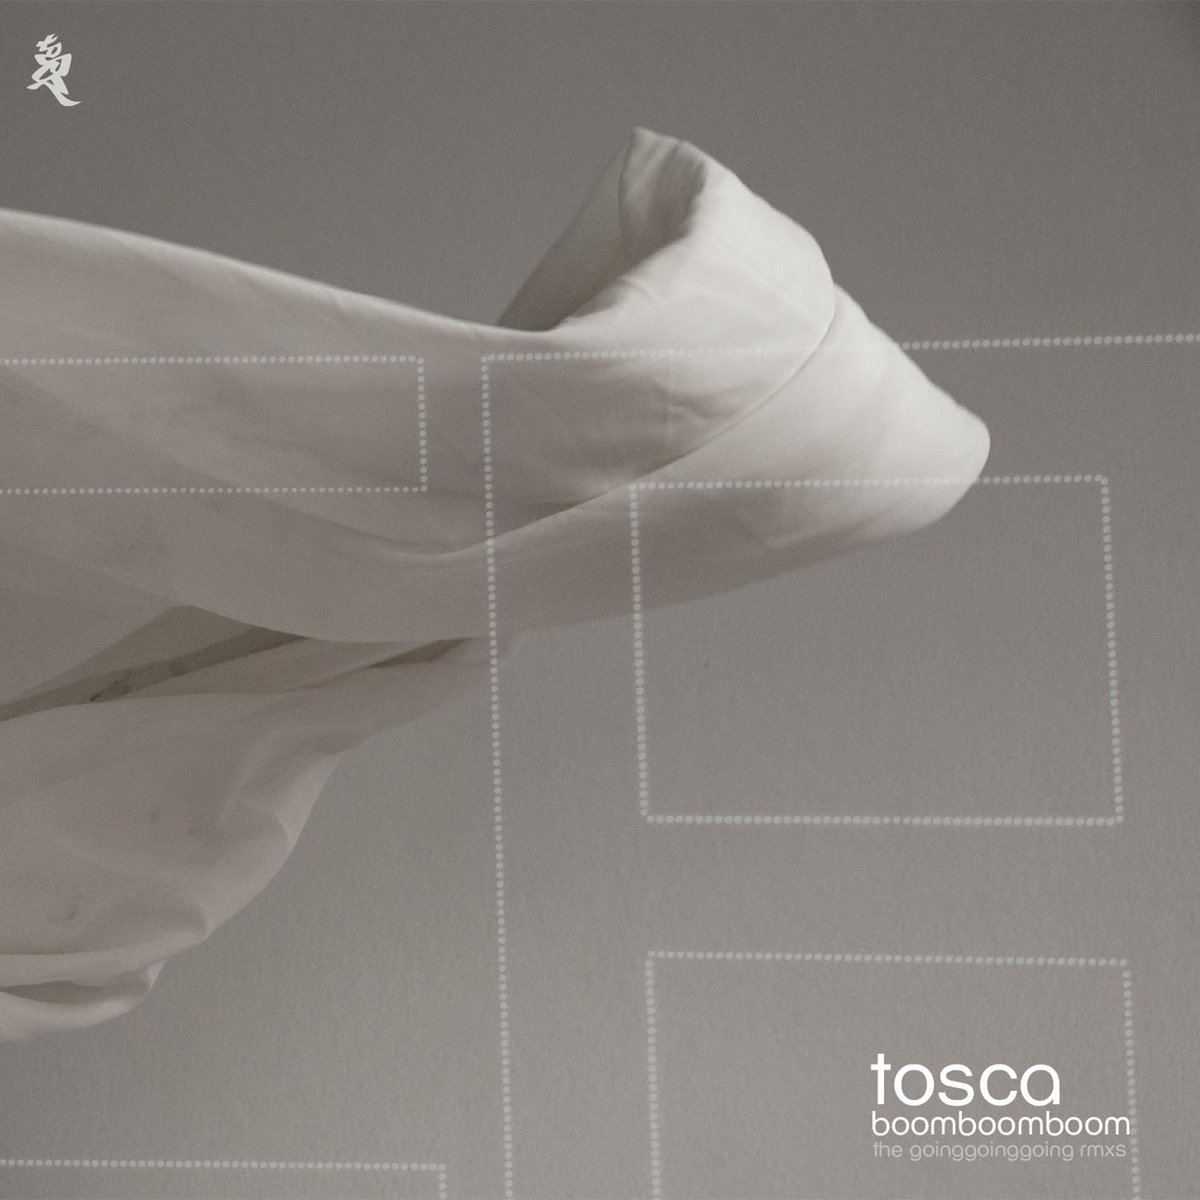 Boom Boom Boom (The Going Going Going Remixes) | Tosca